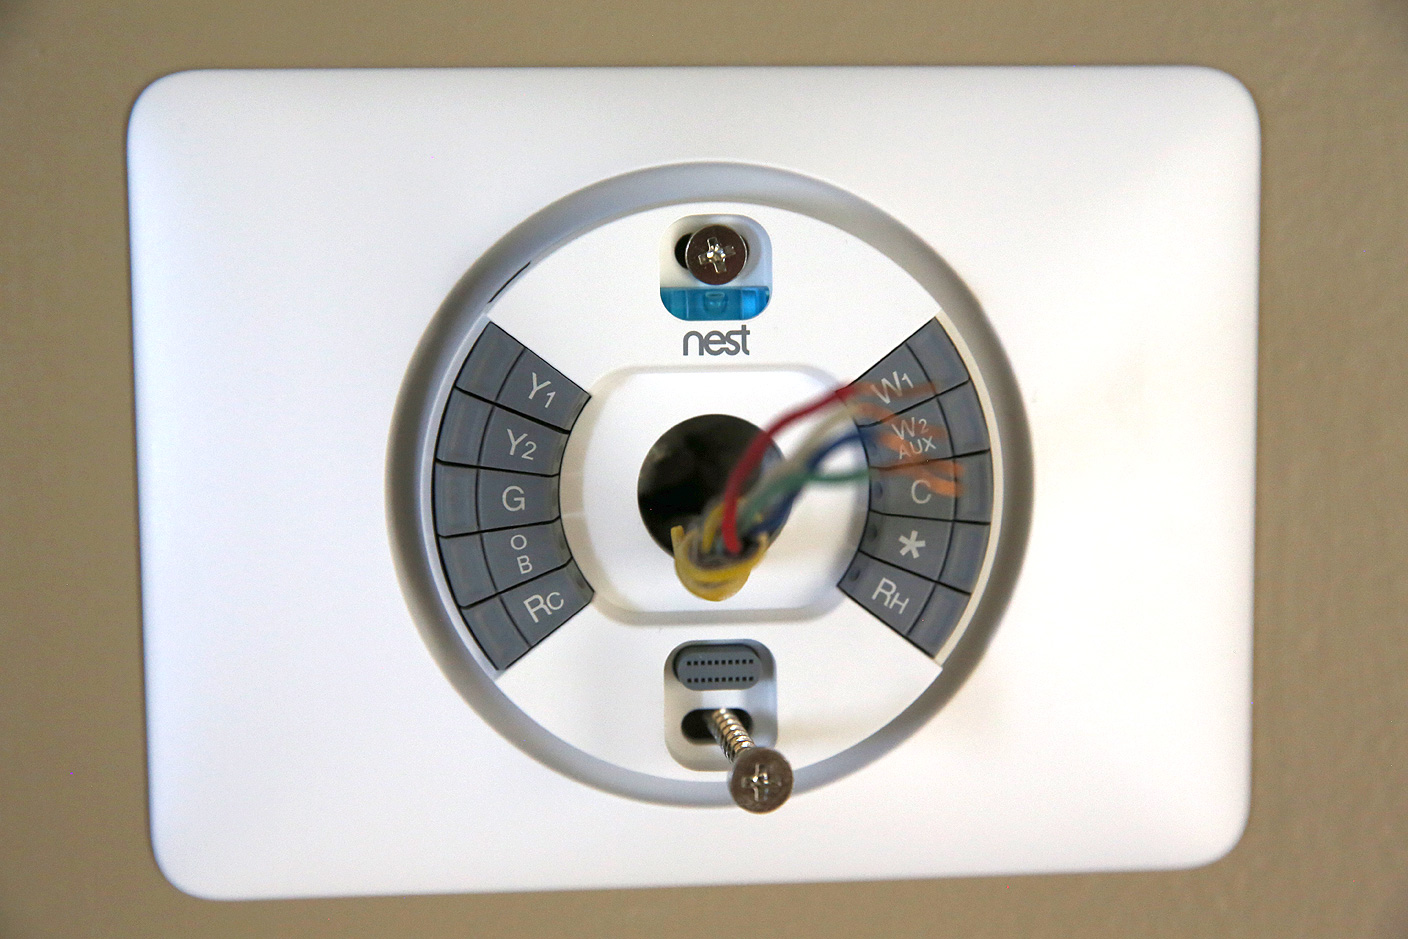 Nest Thermostat Wiring Harness Wire Center 2wire Review S 3rd Gen Learning Adds A Better Screen Rh 9to5mac Com Heat Pump Diagram